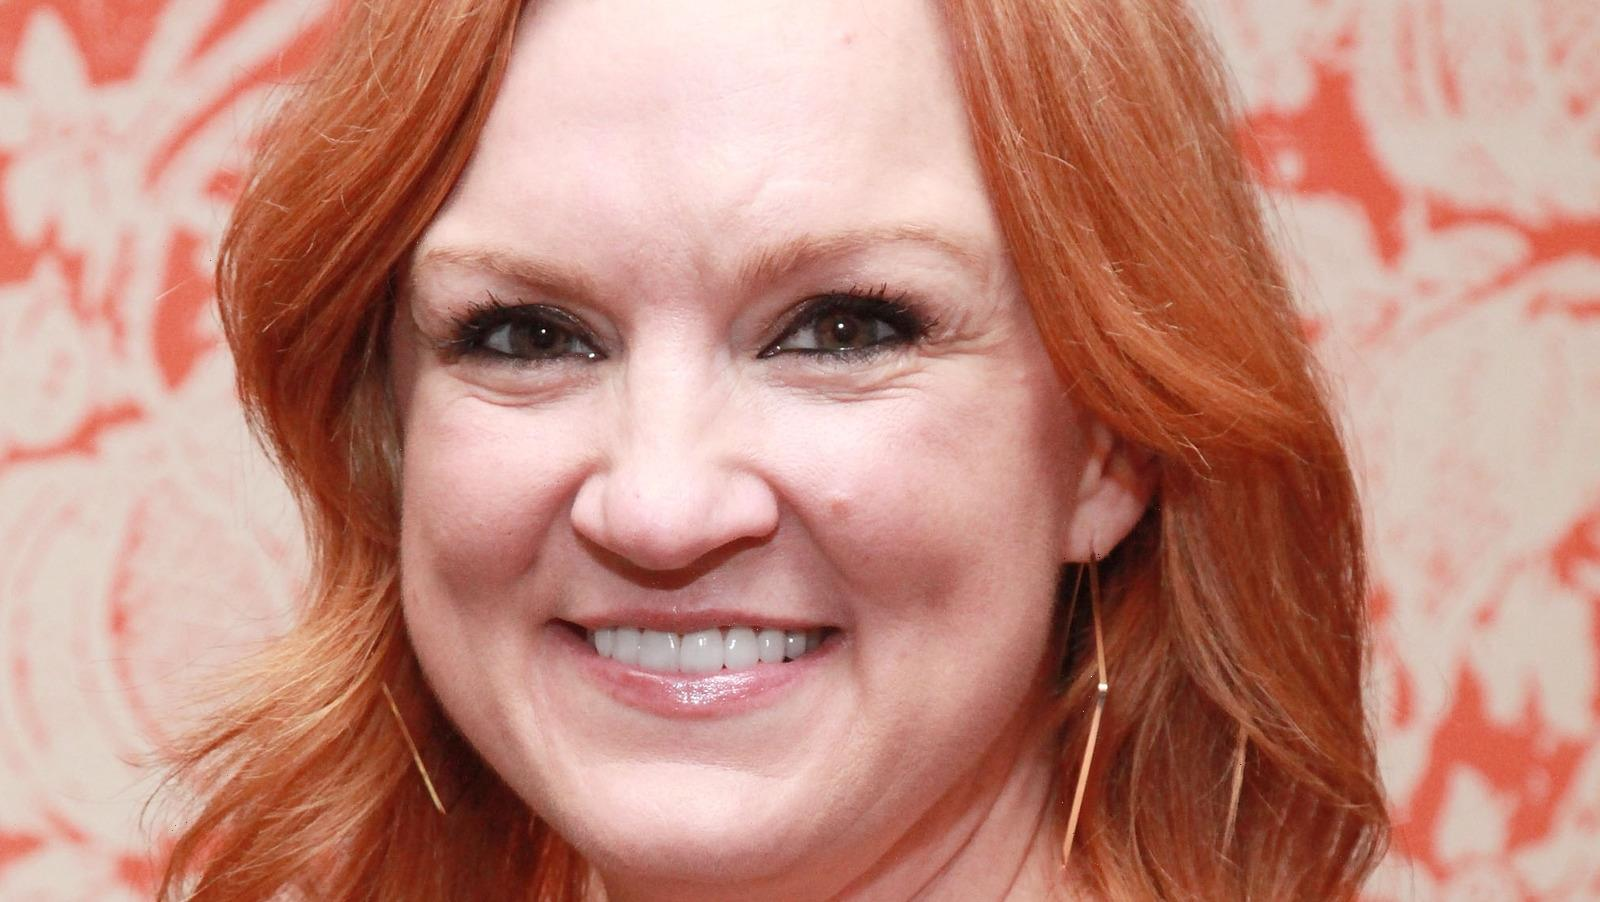 Where Does Ree Drummond Live And How Big Is Her House?